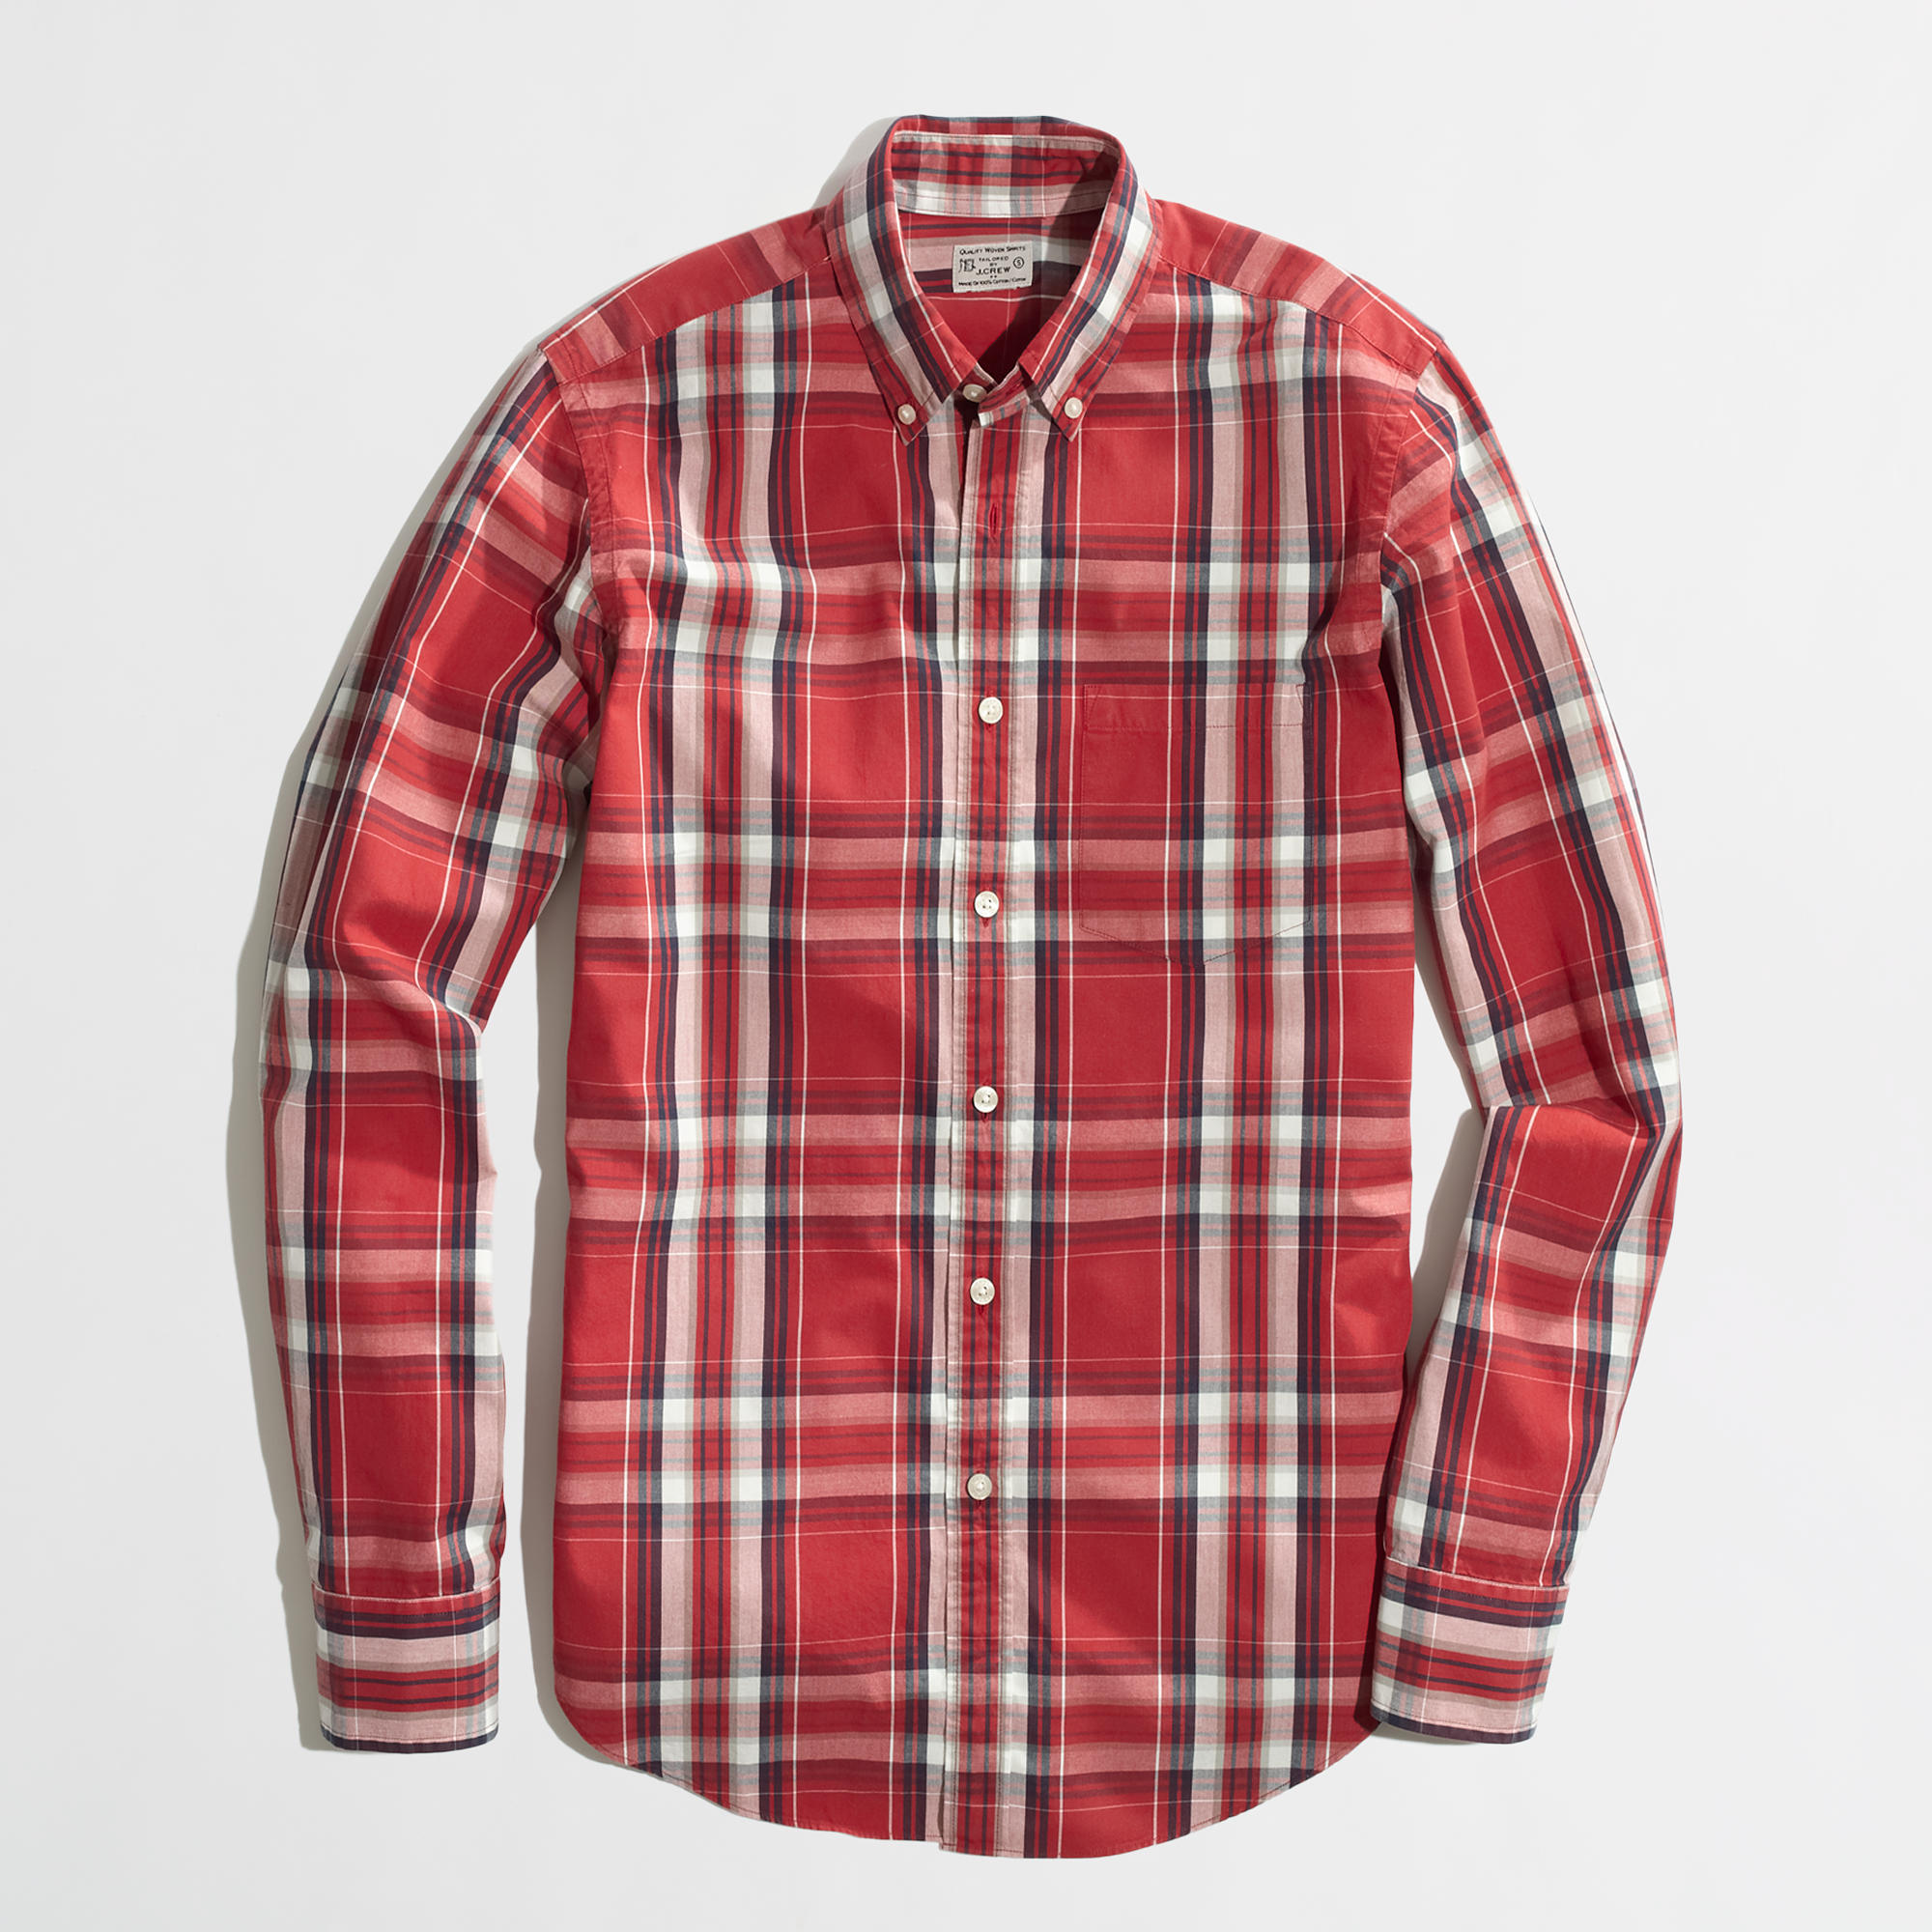 Factory washed shirt in red and white plaid factory for Red and white plaid shirt mens